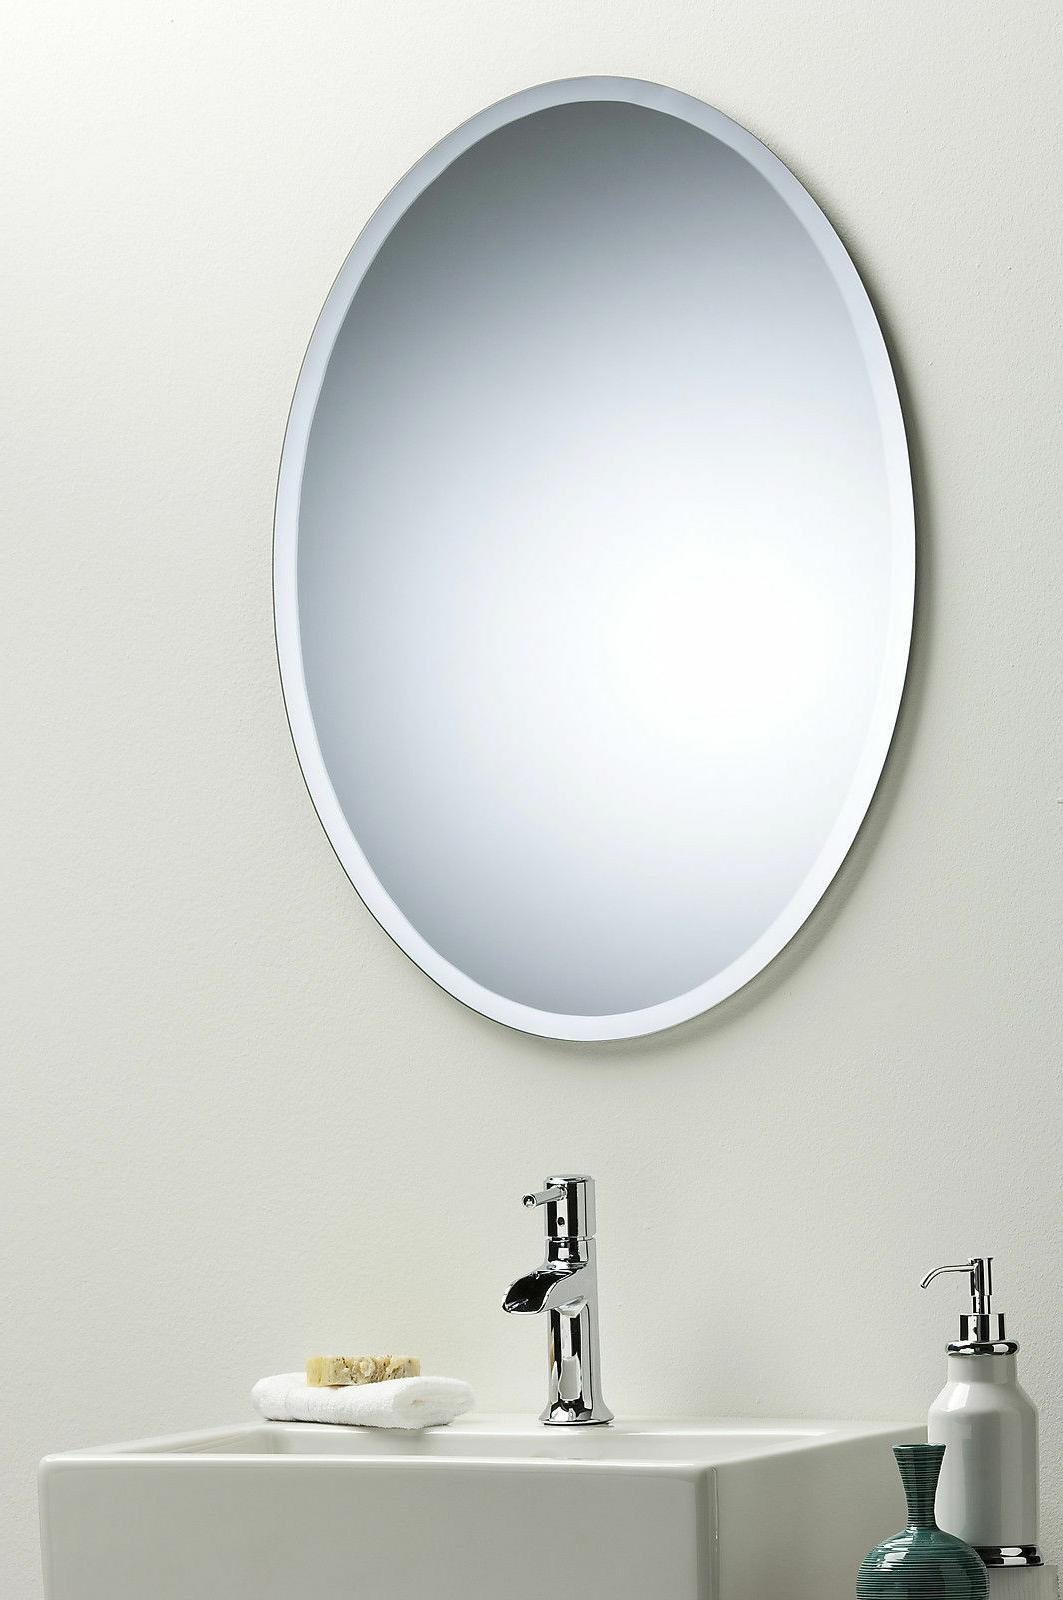 Most Popular Details About Bathroom Wall Mirror Modern Stylish Oval With Bevel Frameless  Plain 2Ae With Regard To Frameless Bathroom Wall Mirrors (View 14 of 20)